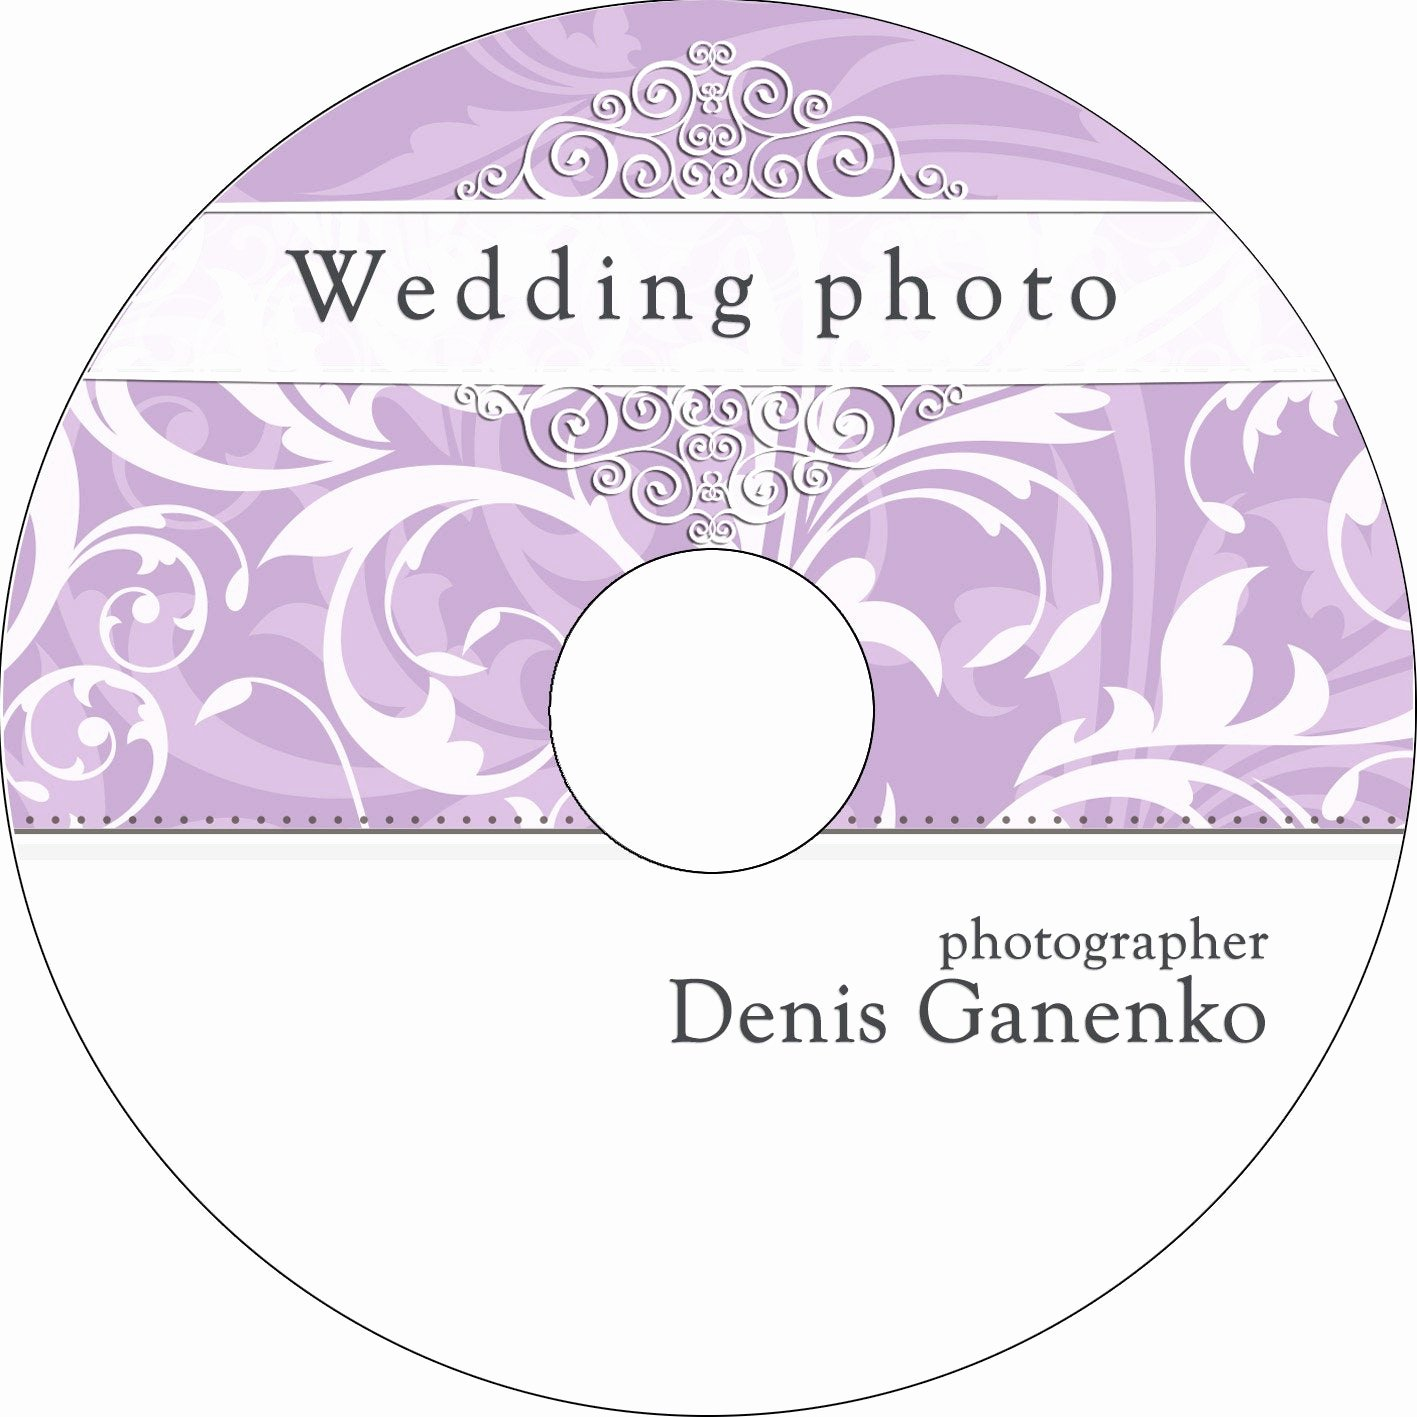 Dvd Label Template Awesome Wedding Cd Dvd Label Template Vintage Patterns by Camera